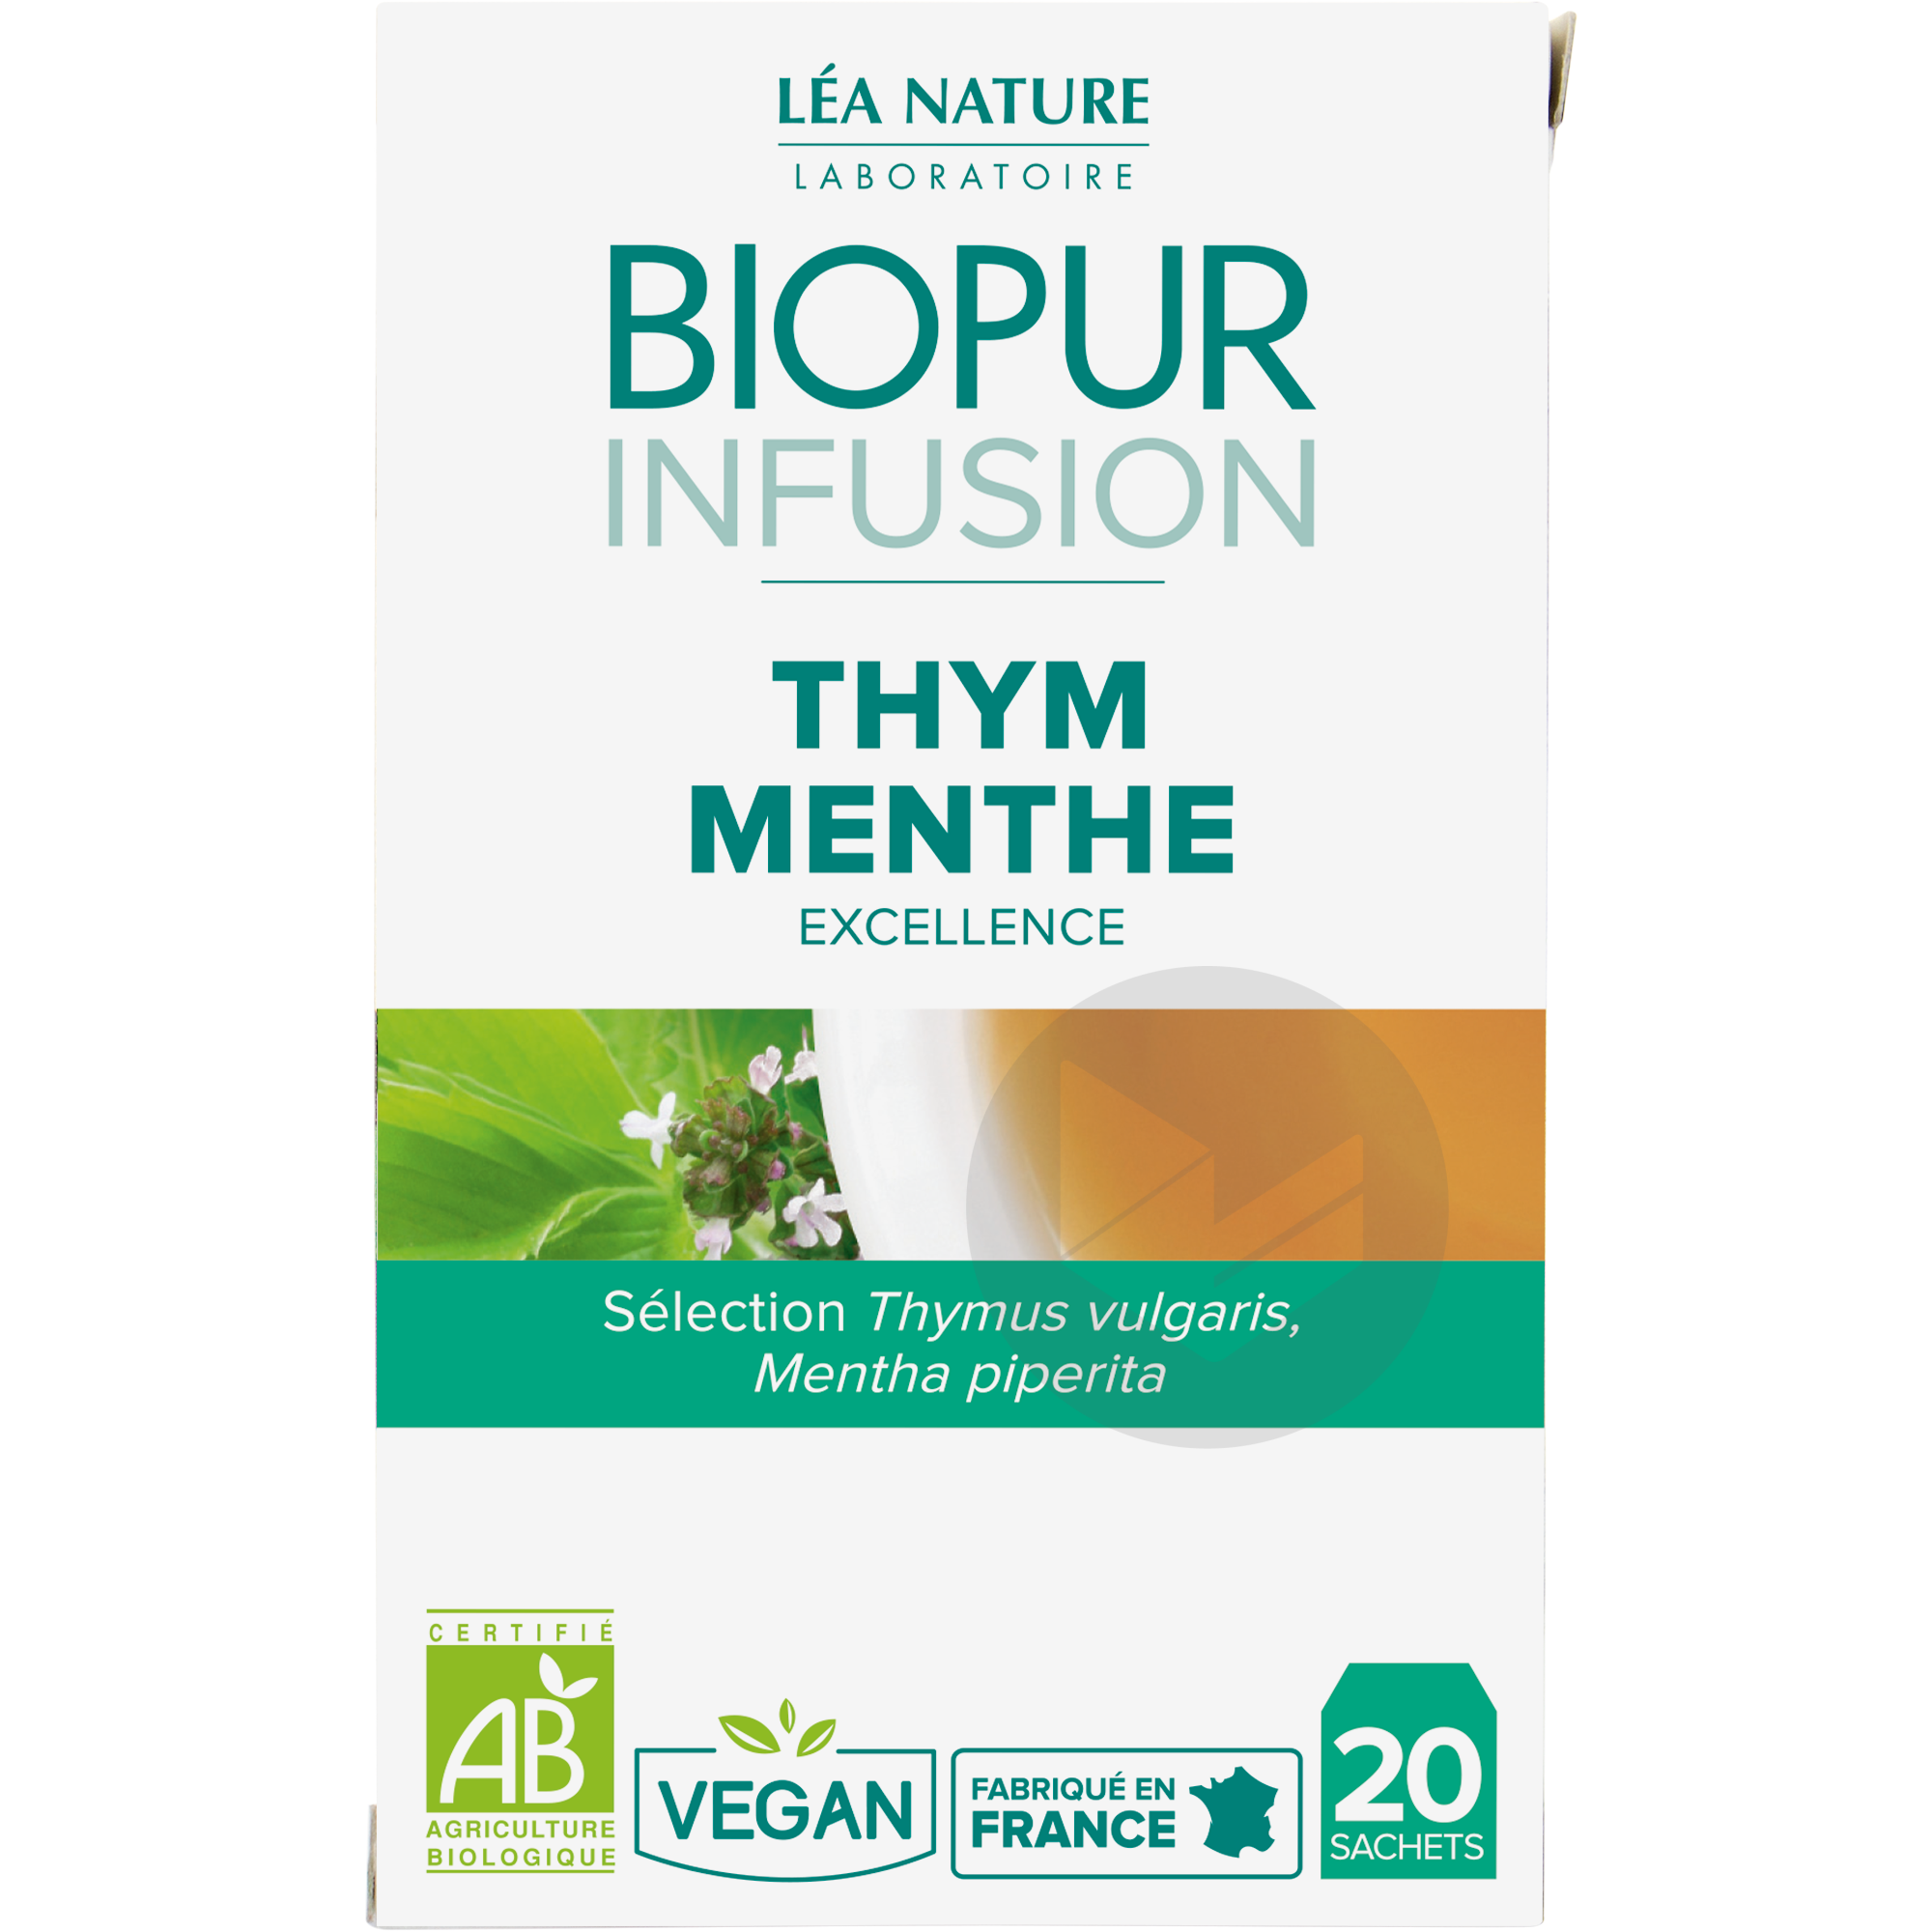 Infusion Thym Menthe